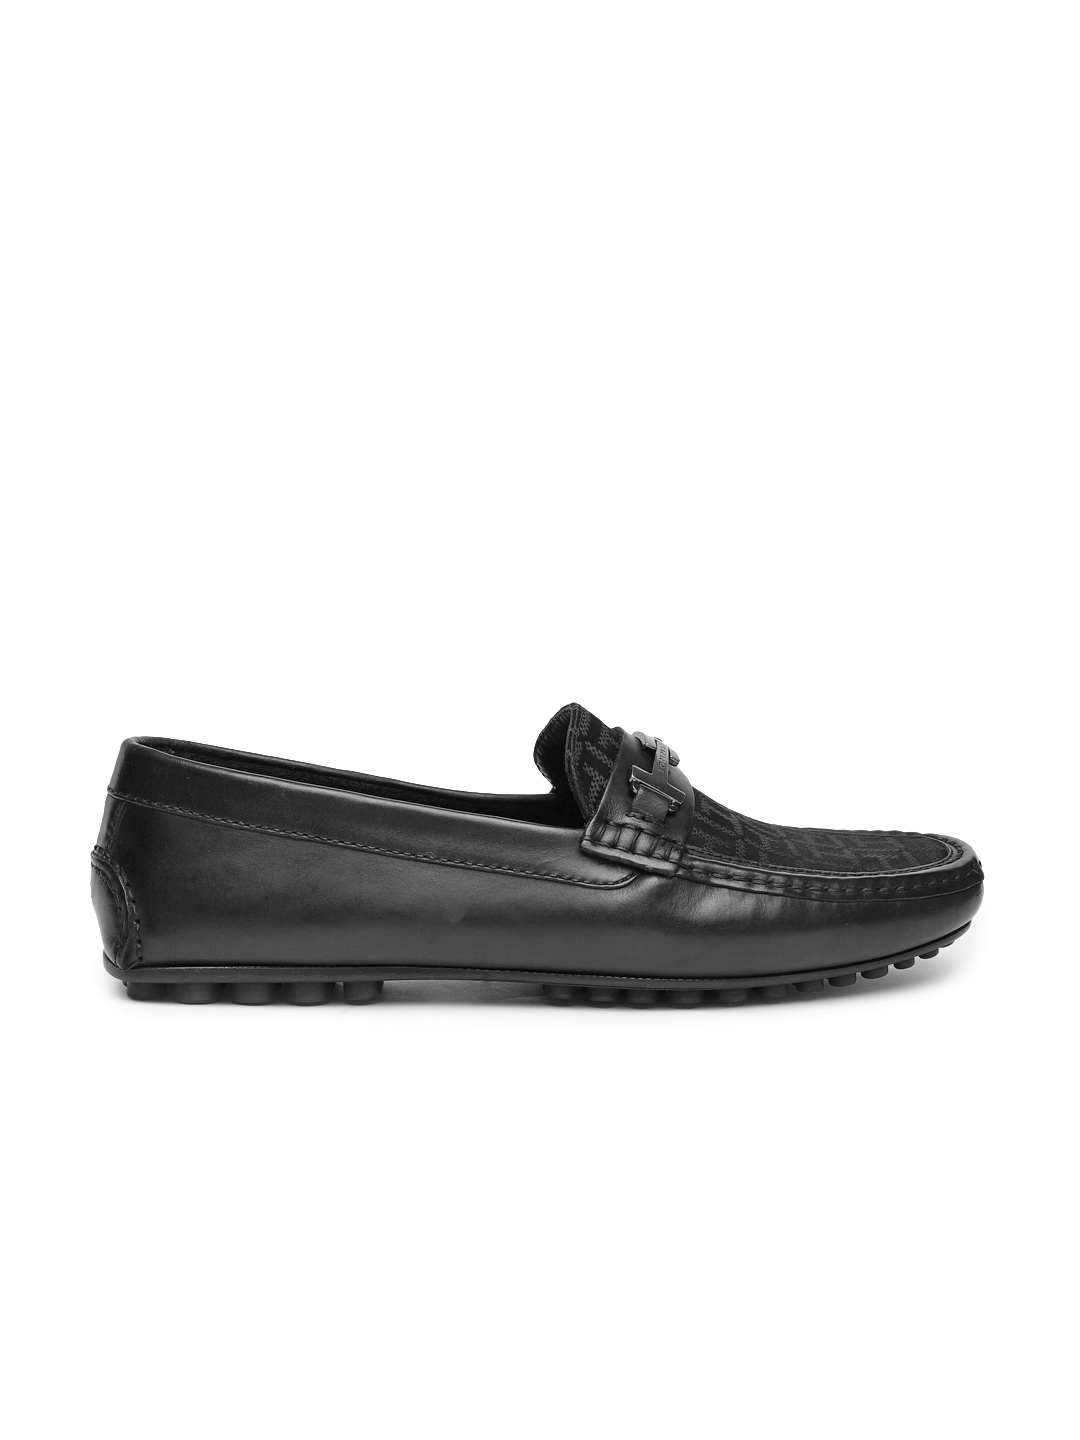 a99e3afd3 Buy Tommy Hilfiger Men Black Leather Loafers - Casual Shoes for Men ...